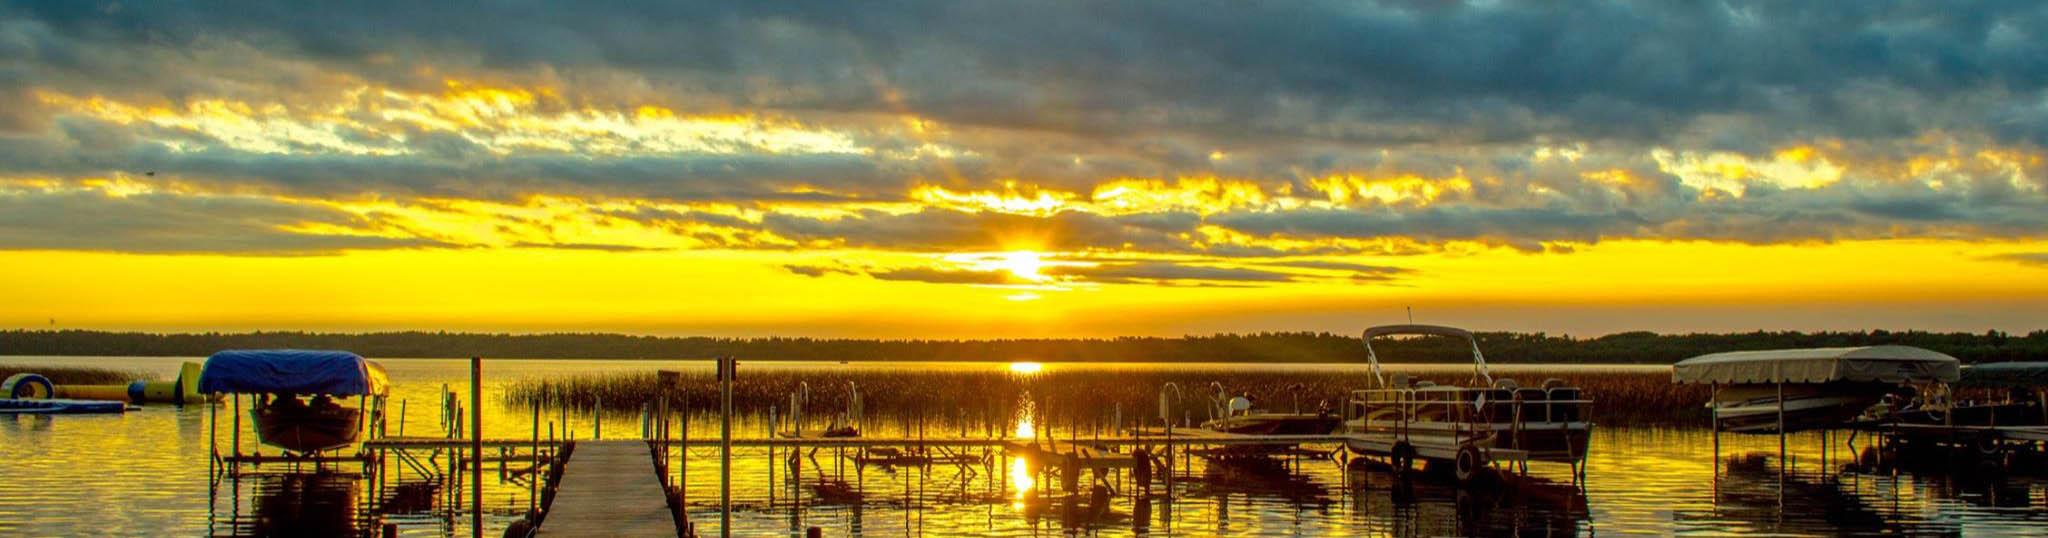 pictures of Balsam Beach, finest Bemidji Resort in Northern Minnesota